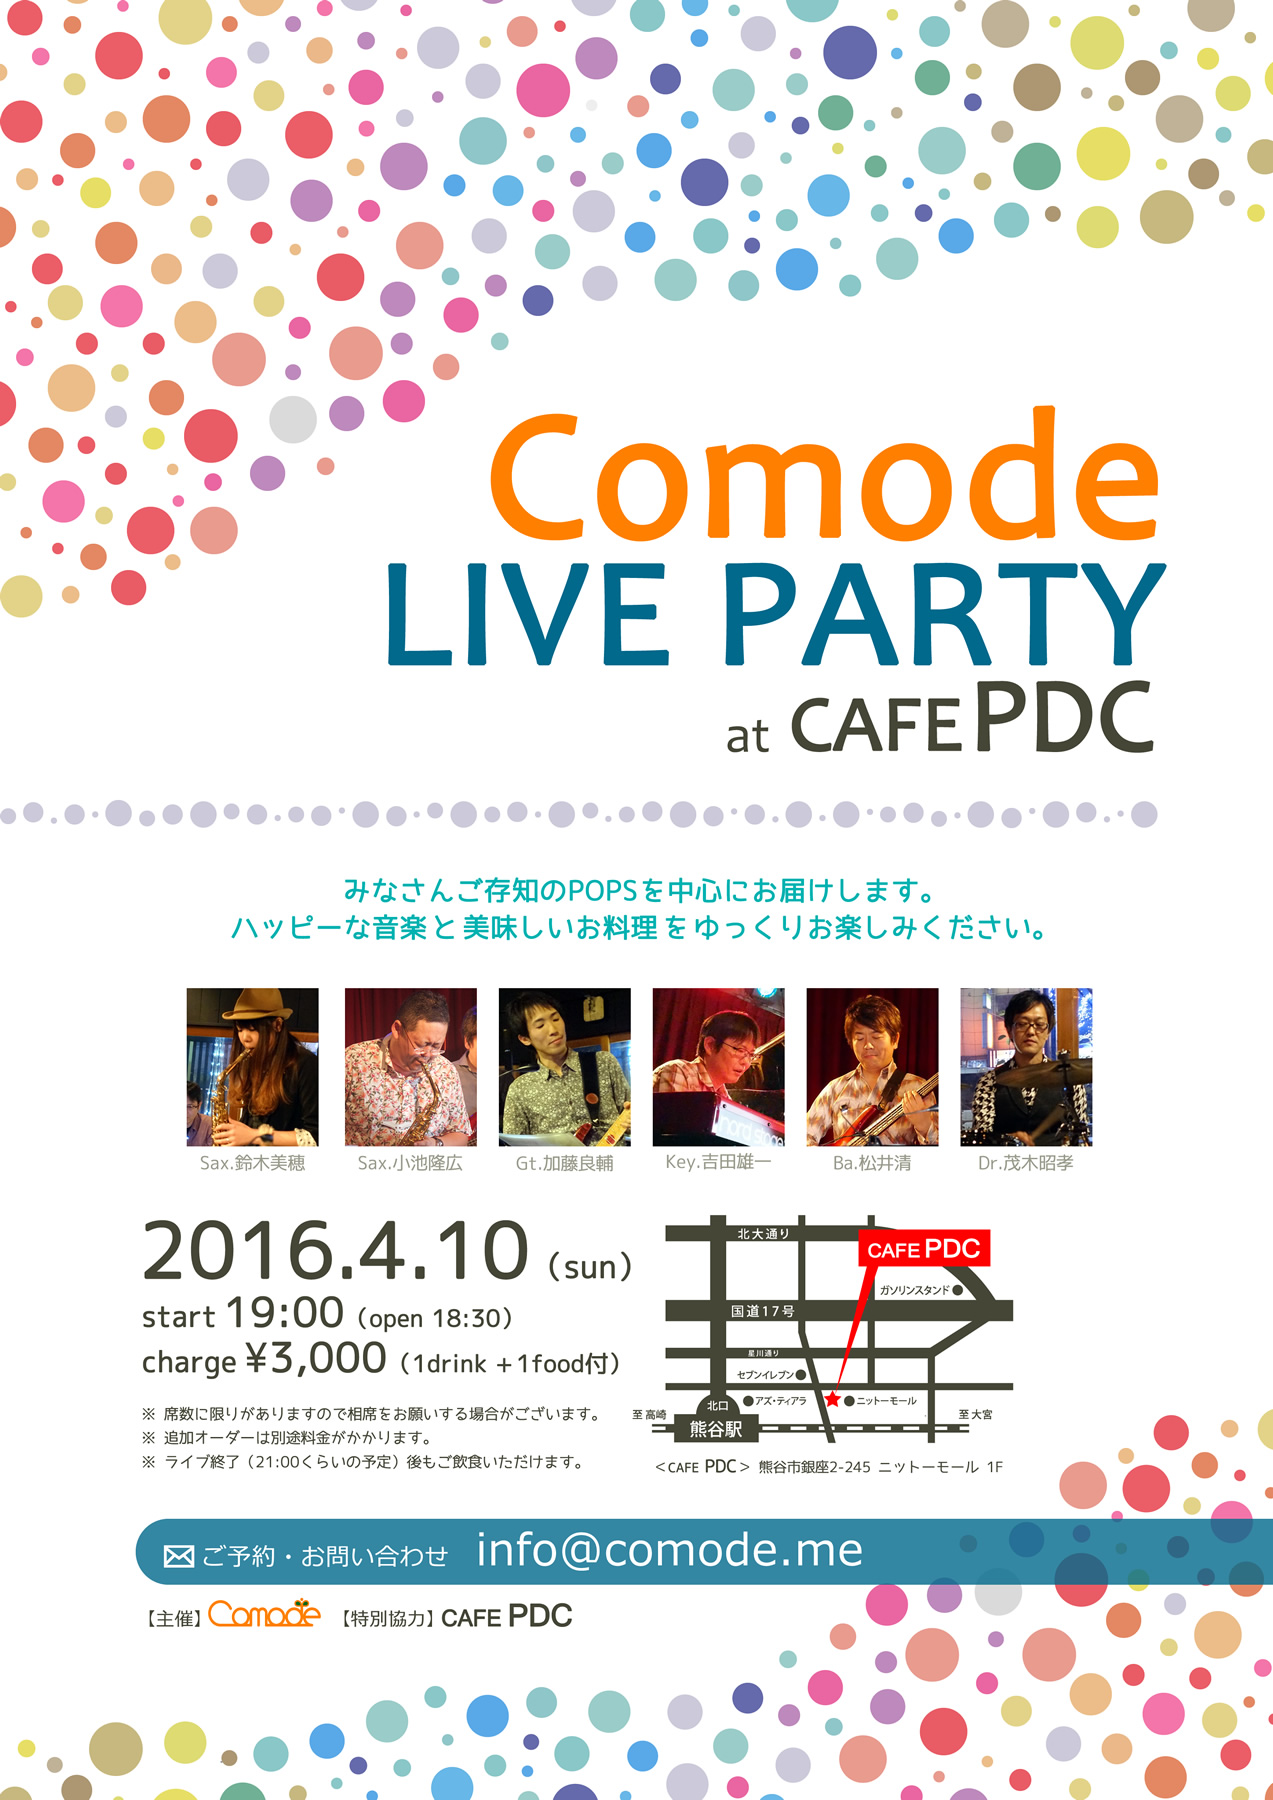 Comode ライブパーティー at CAFE PDC 2016年4月10日(日)